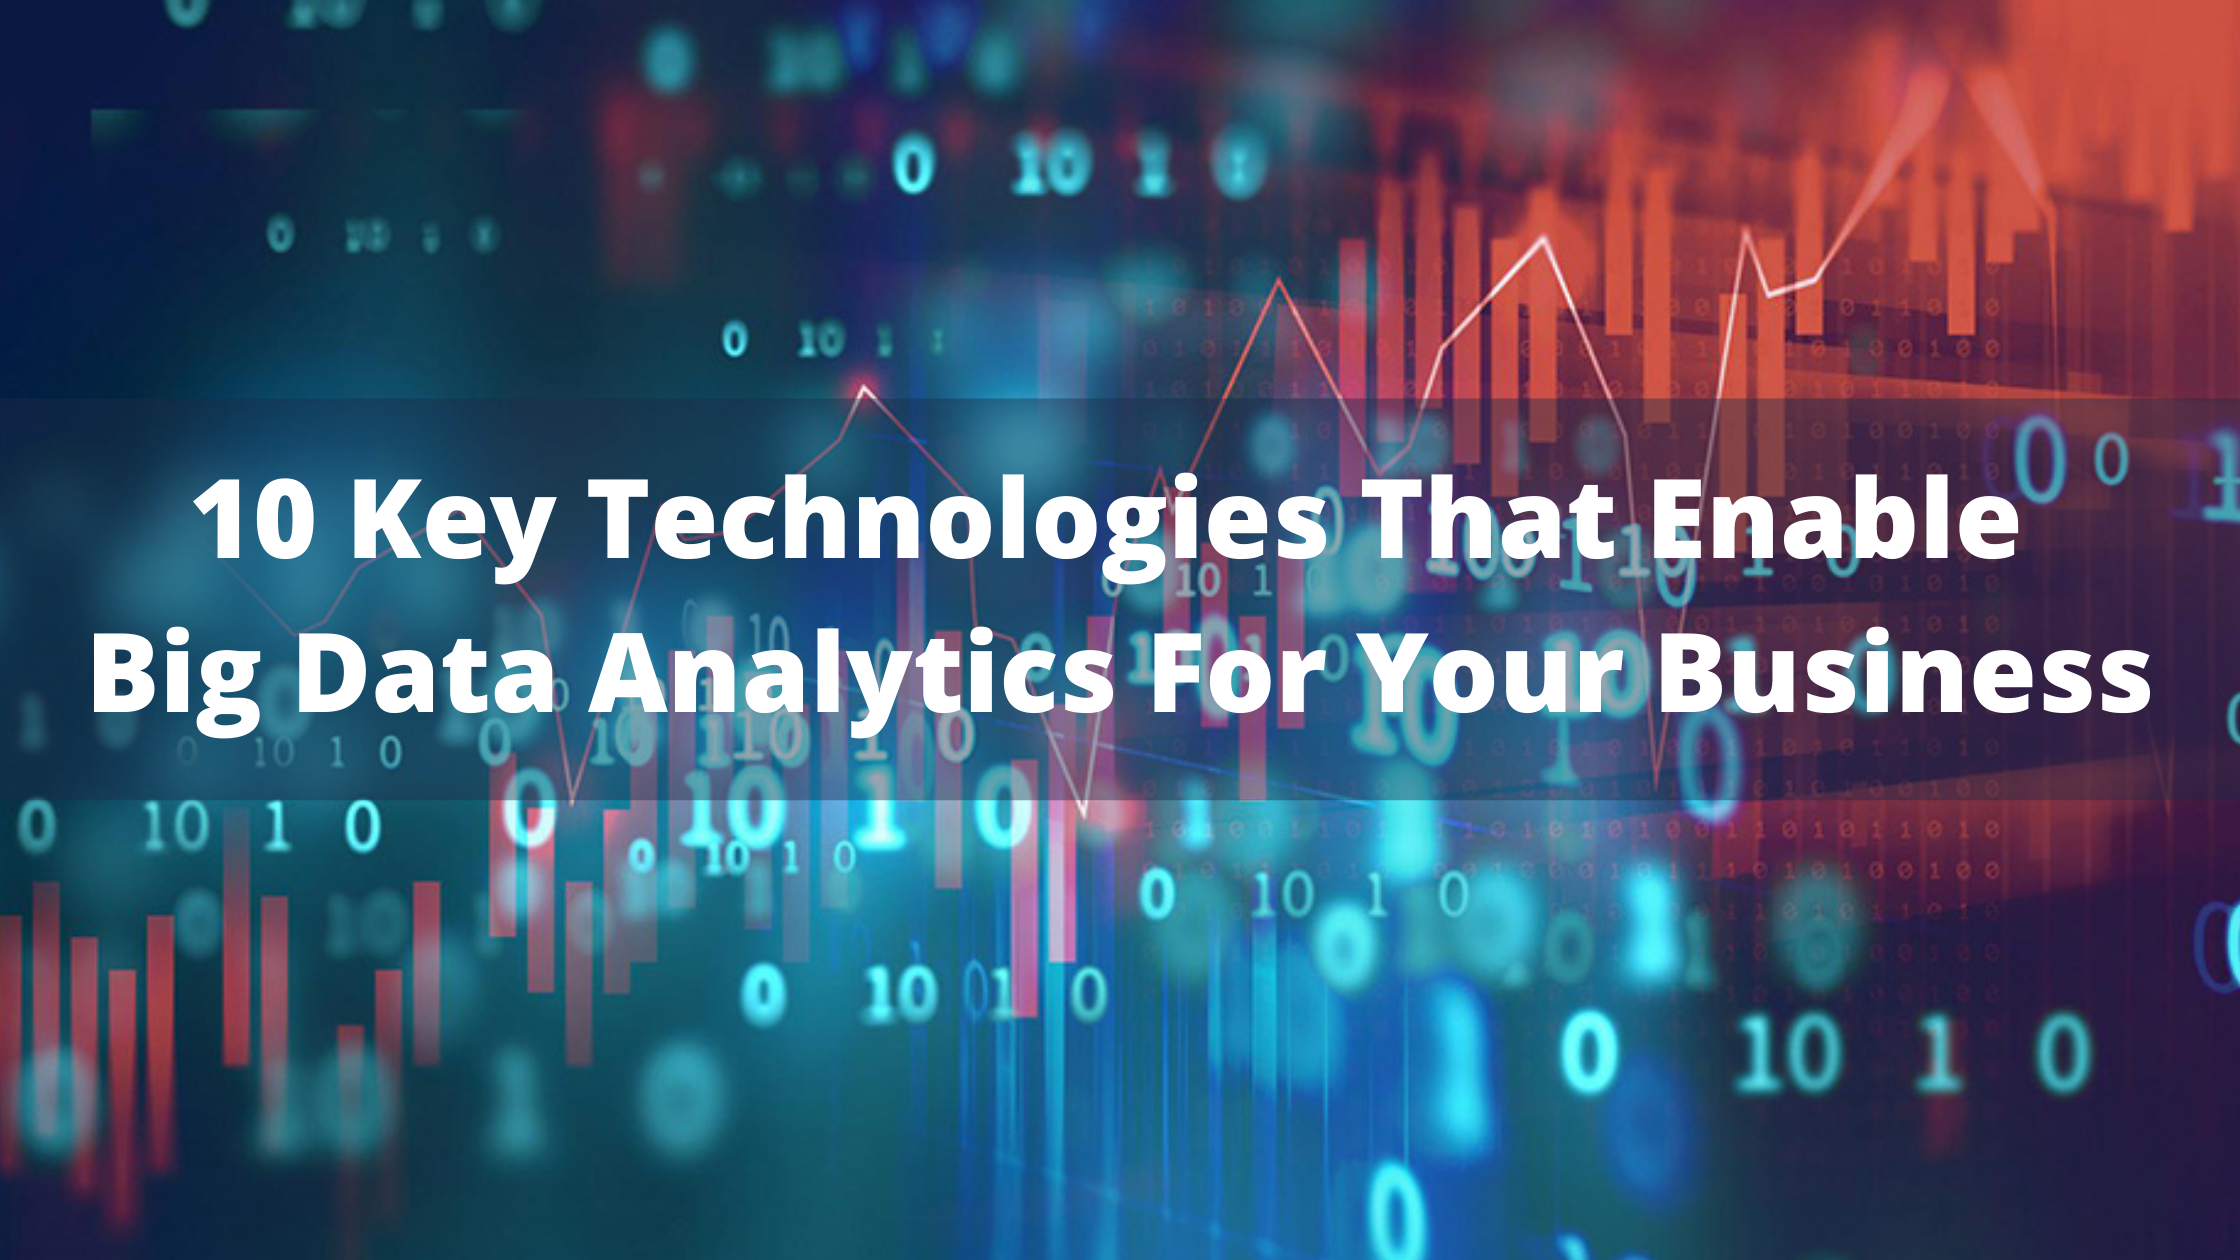 Big Data Analytics For Businesses